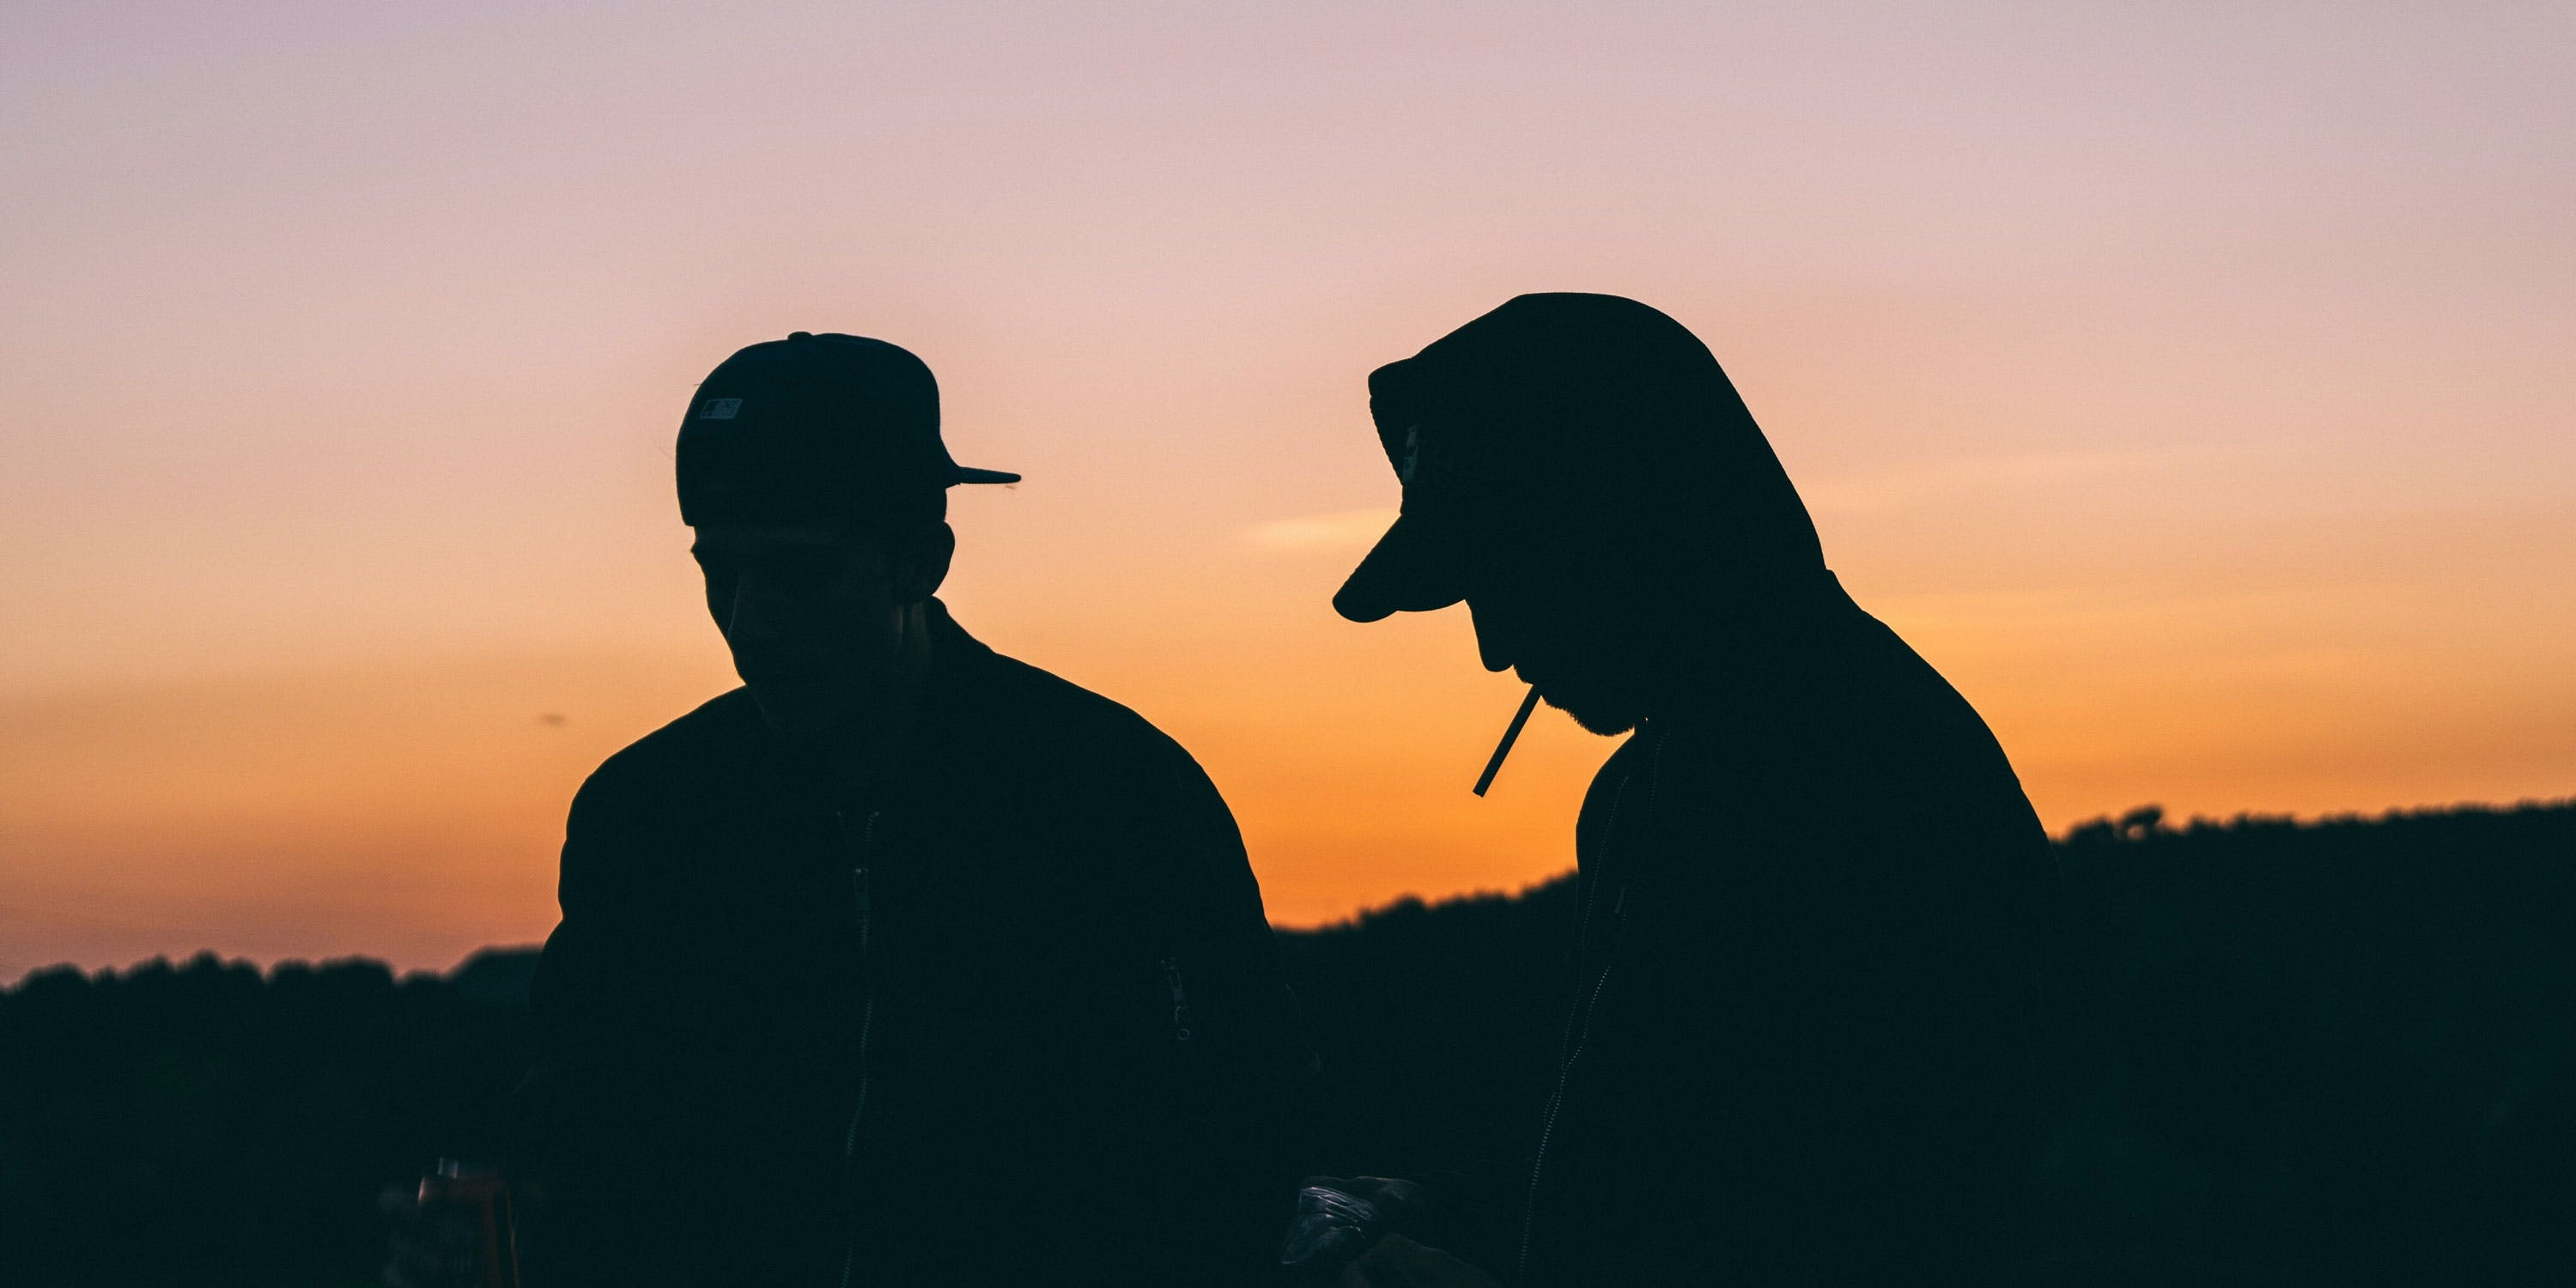 Most universities prohibit weed smoking on campus. Here, two students are shown smoking at sunset